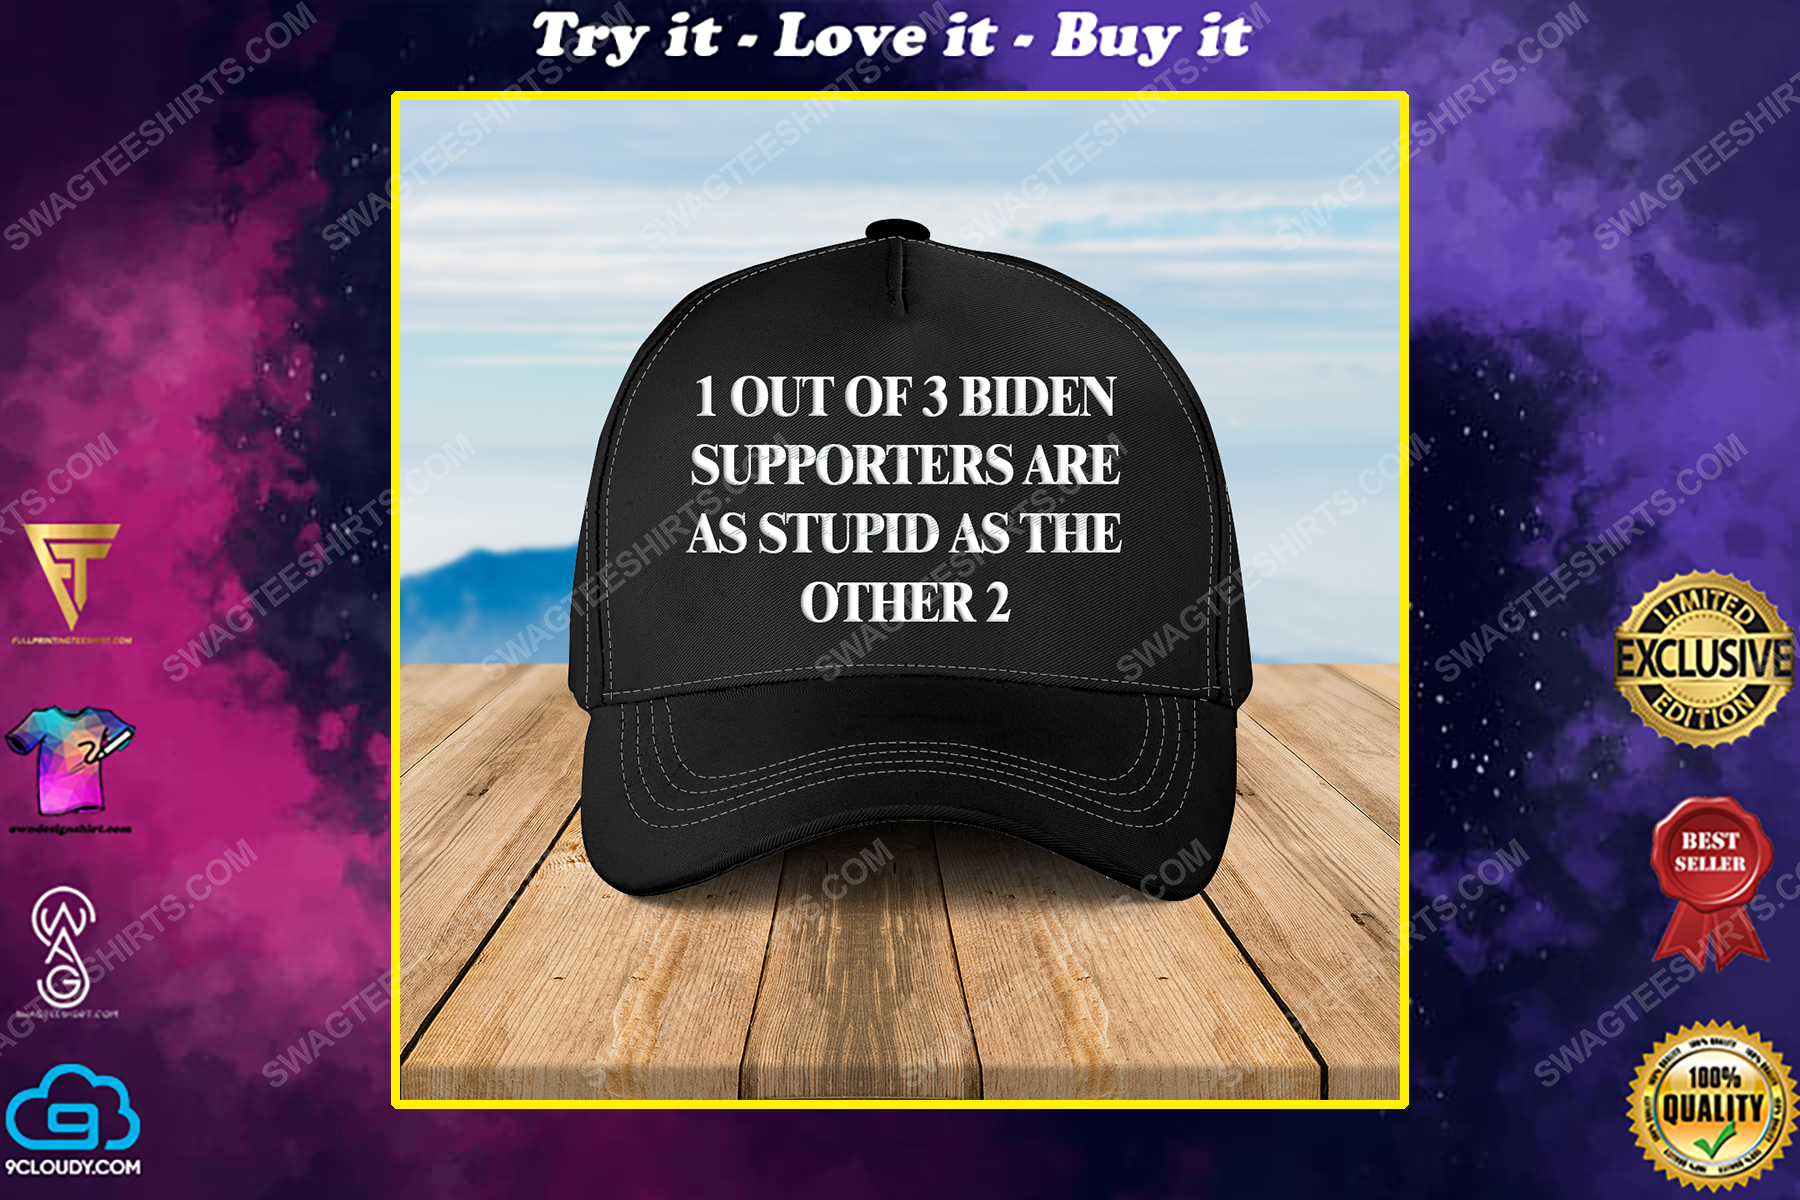 1 out of 3 biden supporters are as stupid as the other 2 full print classic hat